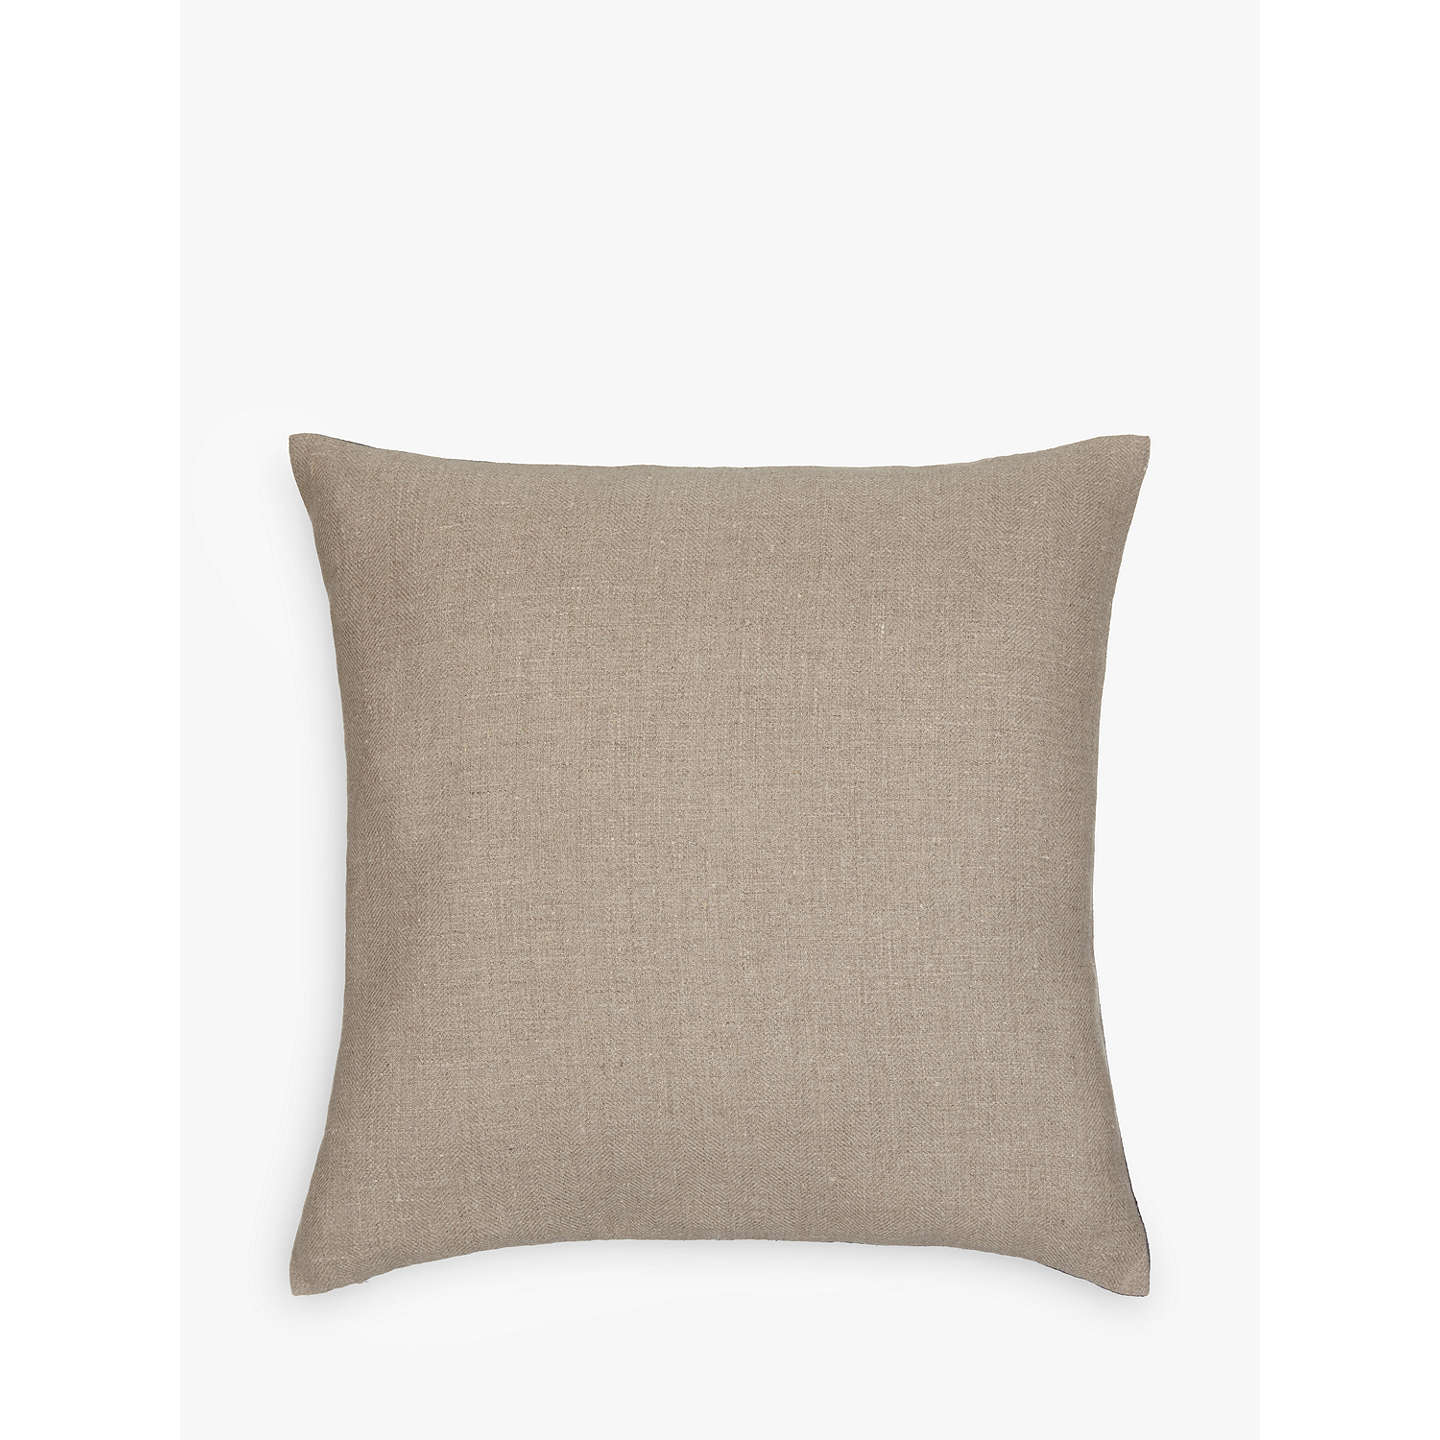 BuyJohn Lewis Herringbone Linen Cushion, Steel Online at johnlewis.com